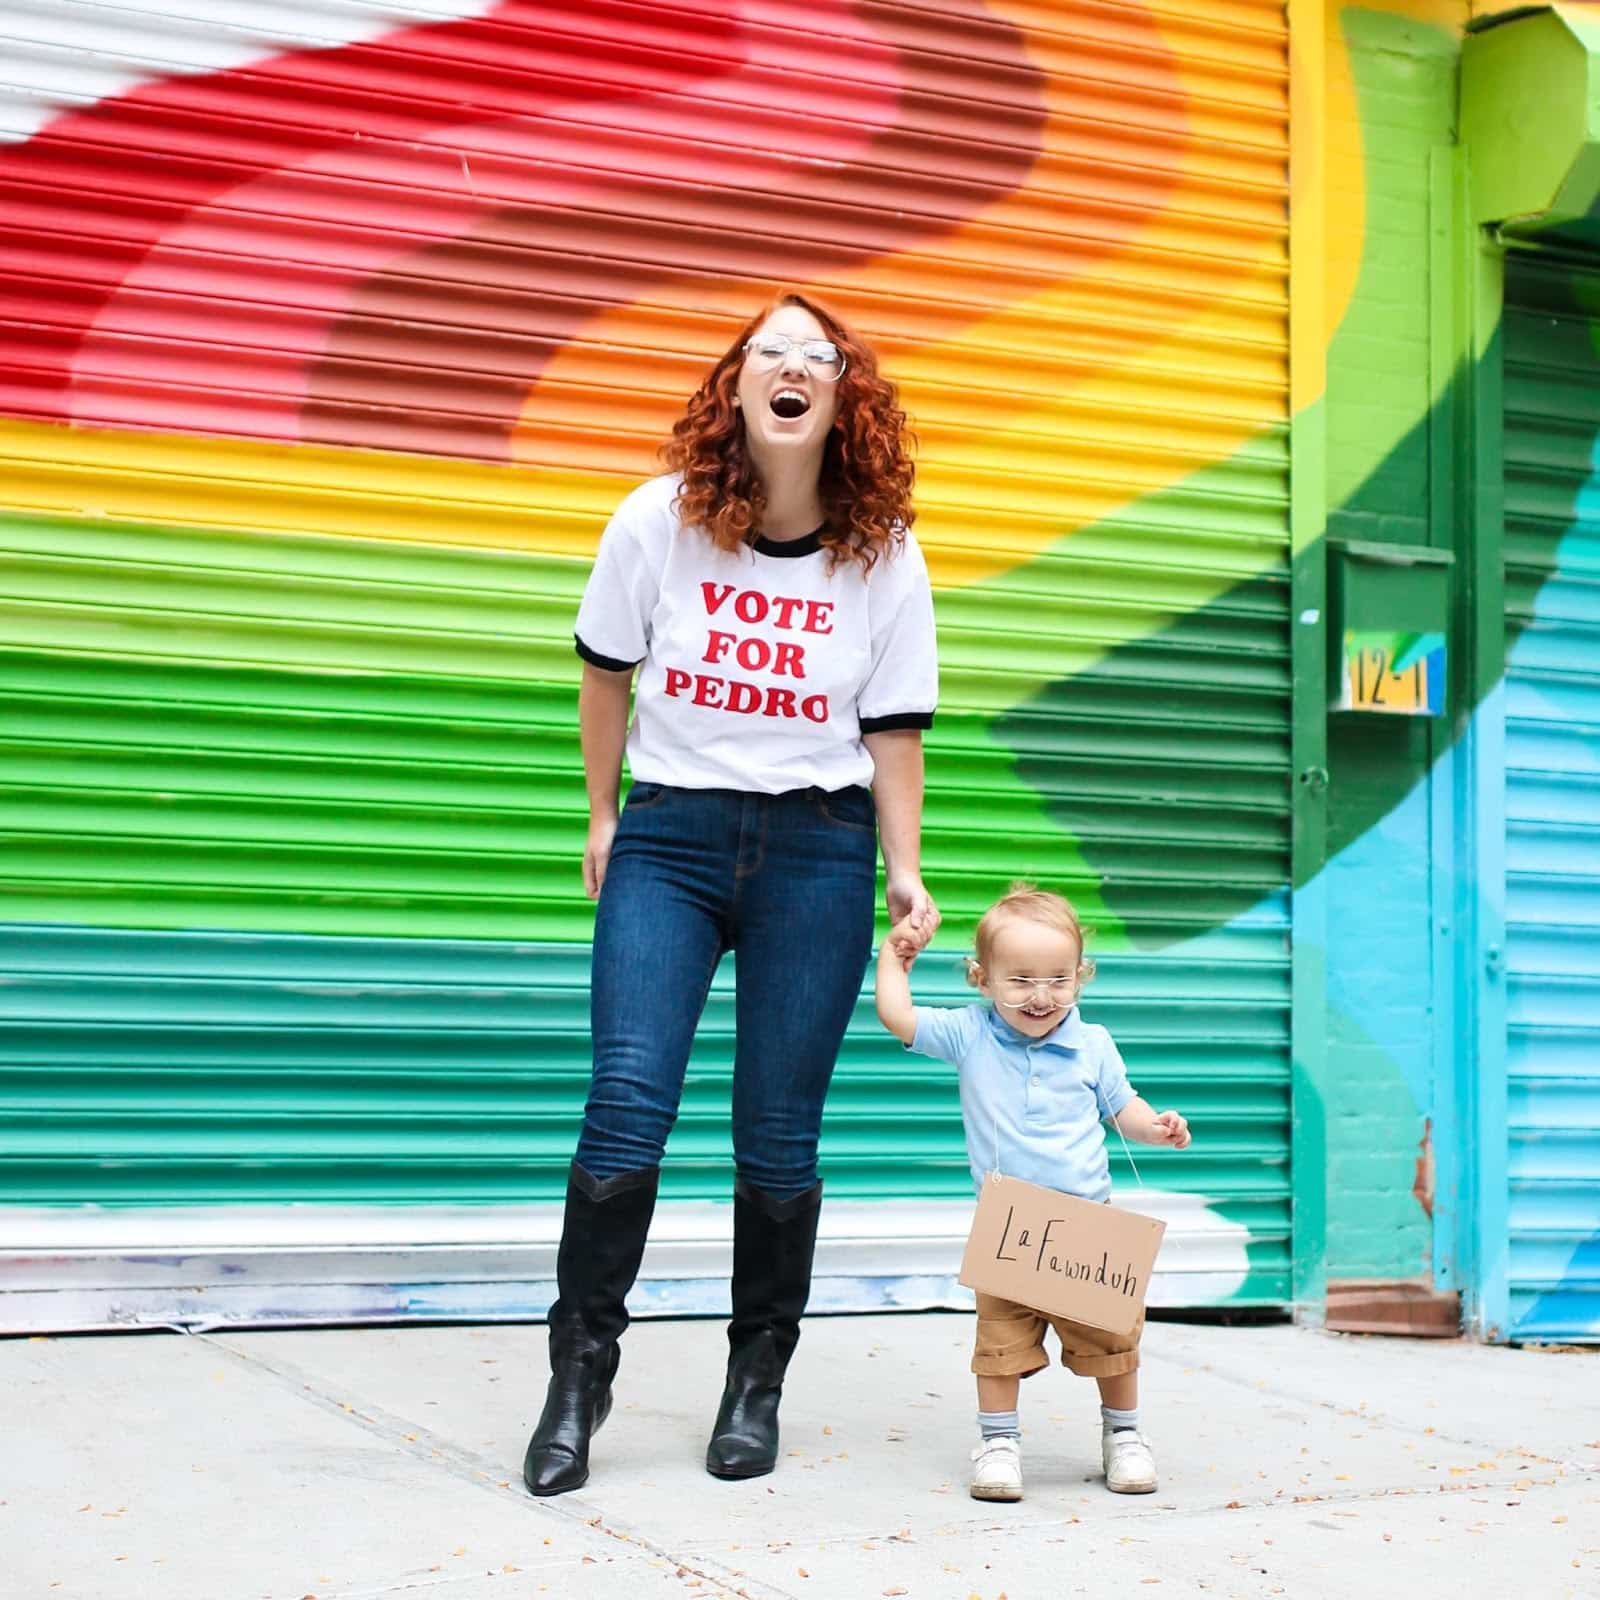 Napoleon Dynamite & Kip Halloween Costume - Looking for cute, cheap, and easy Halloween costumes or unique last-minute, DIY Halloween costume ideas? Check out these 40 Creative Halloween Costume Ideas for women, moms, cute couples, small and large families, and best friends! You're sure to win the best Halloween costumes with these picks. #halloween #halloweencostumes #halloweencostumeideas #easycostumes